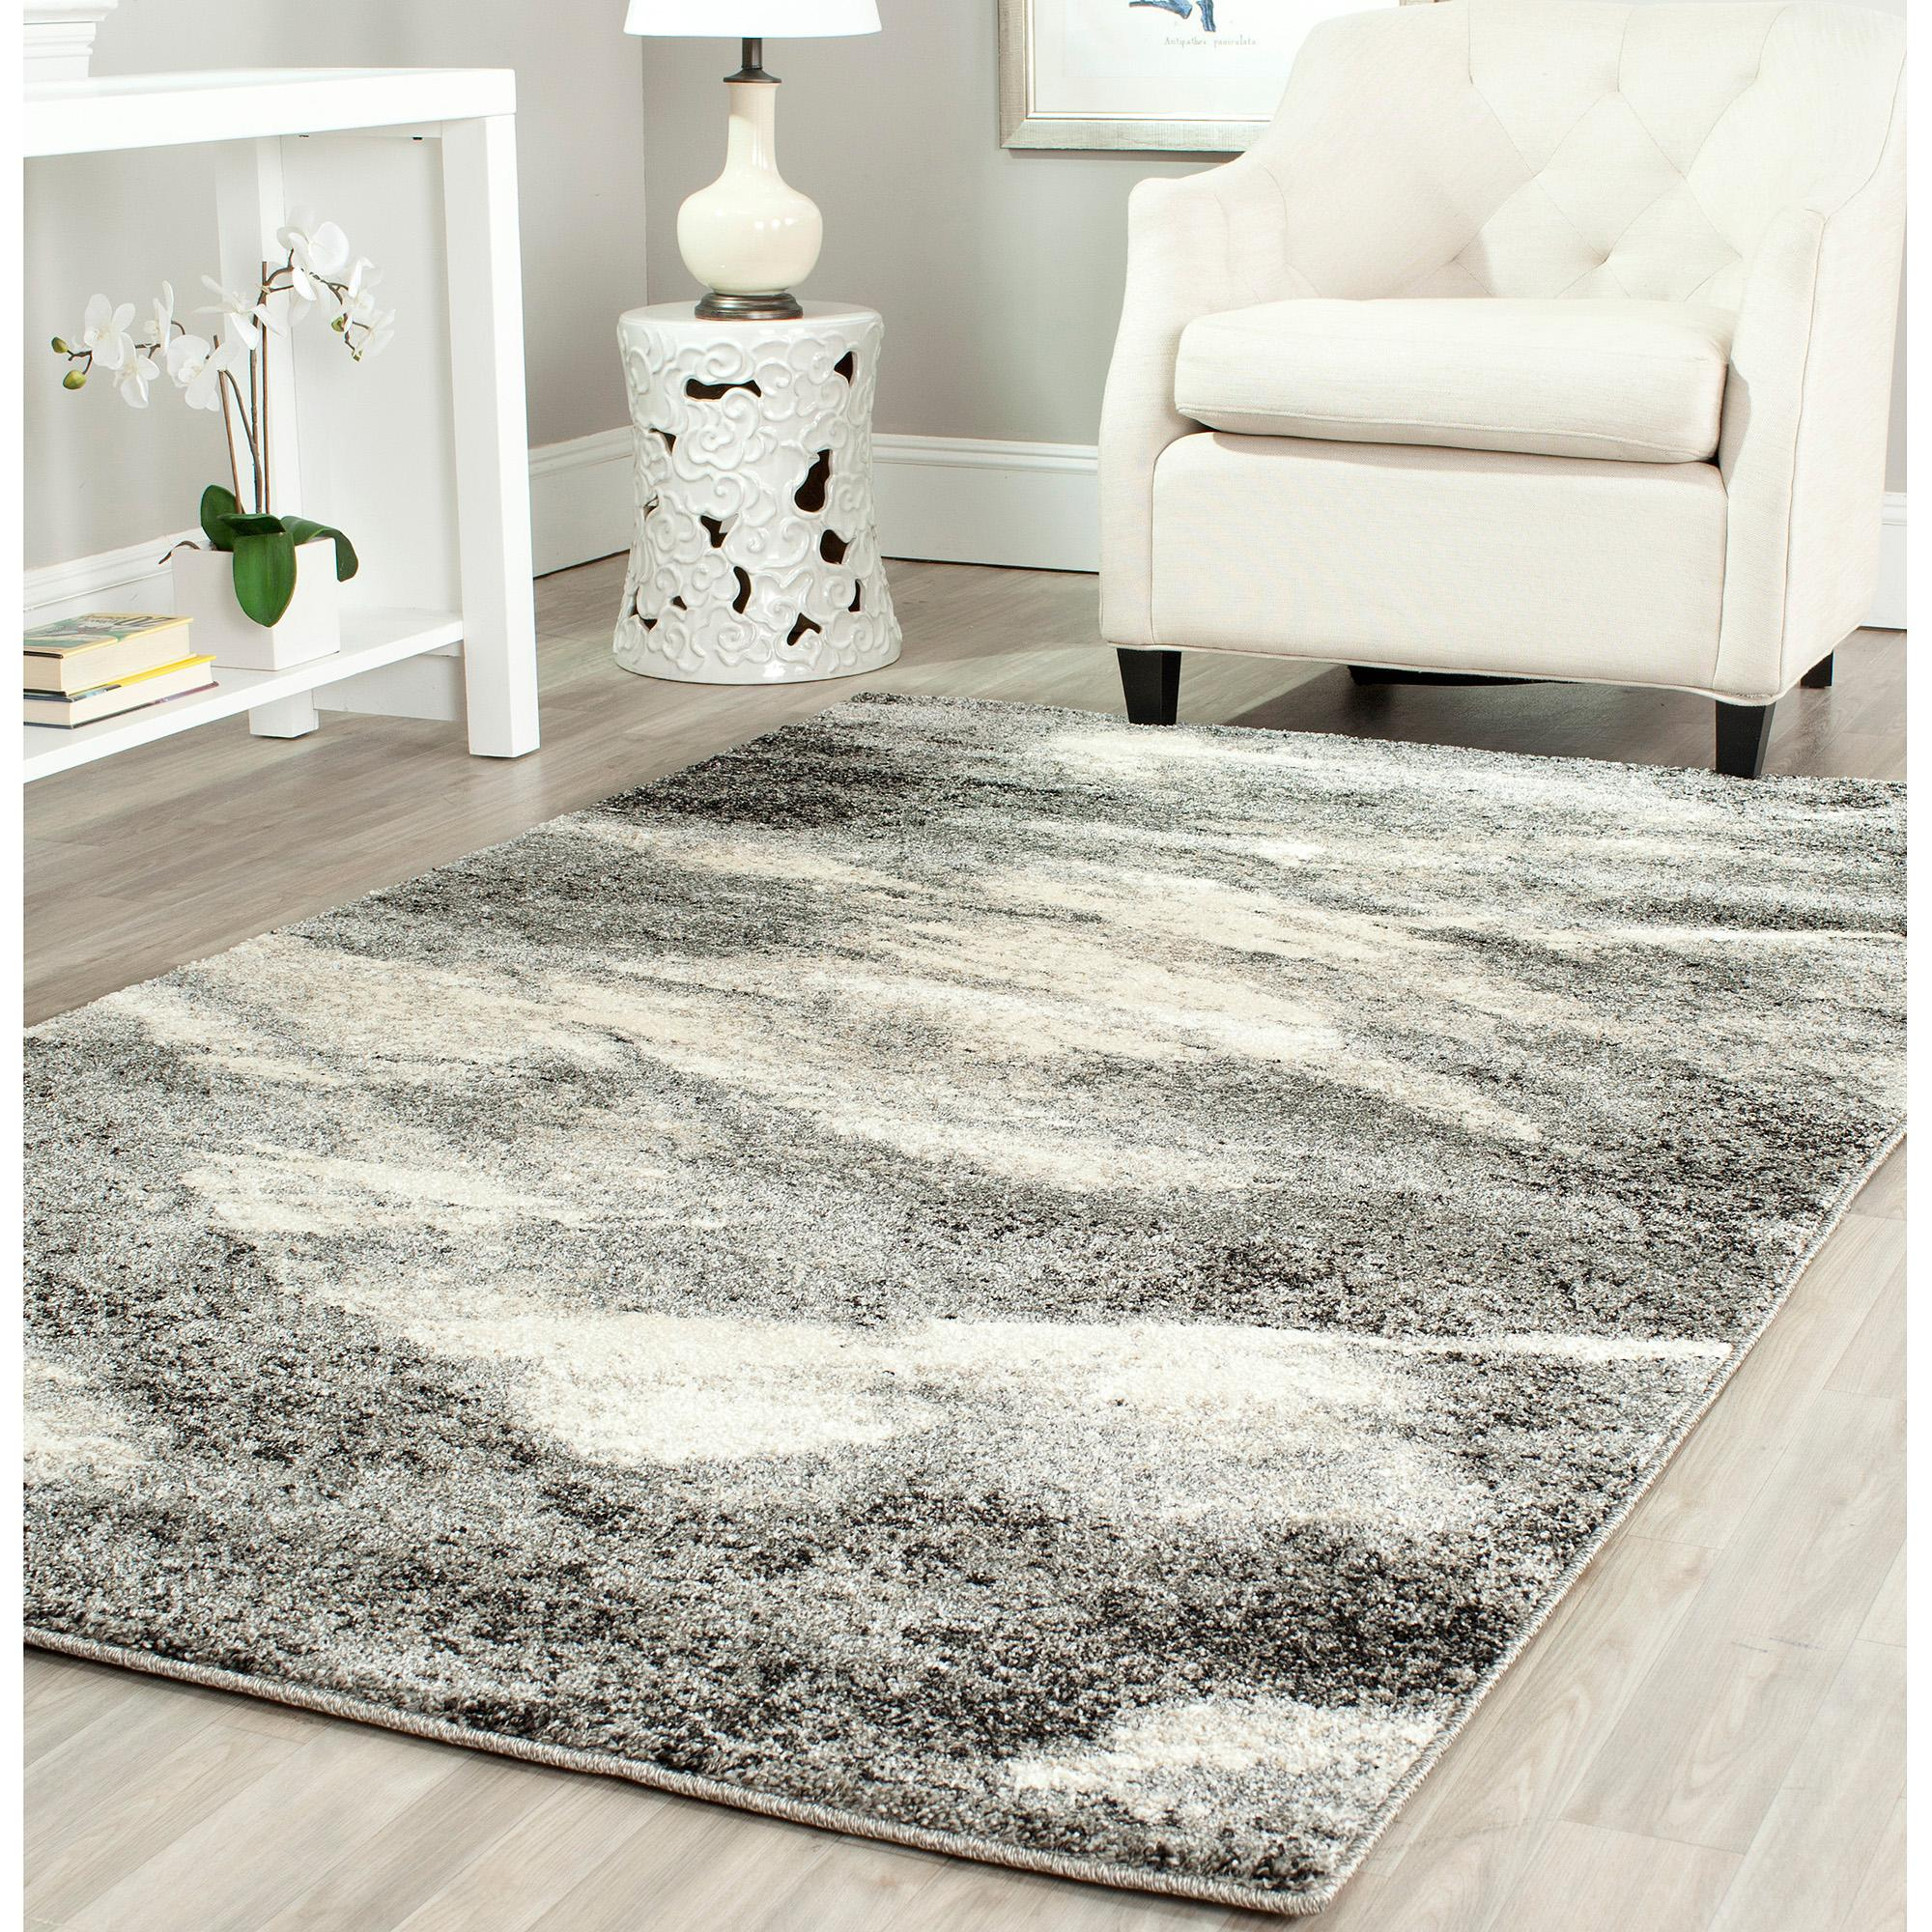 Black And White Damask Area Rug ...